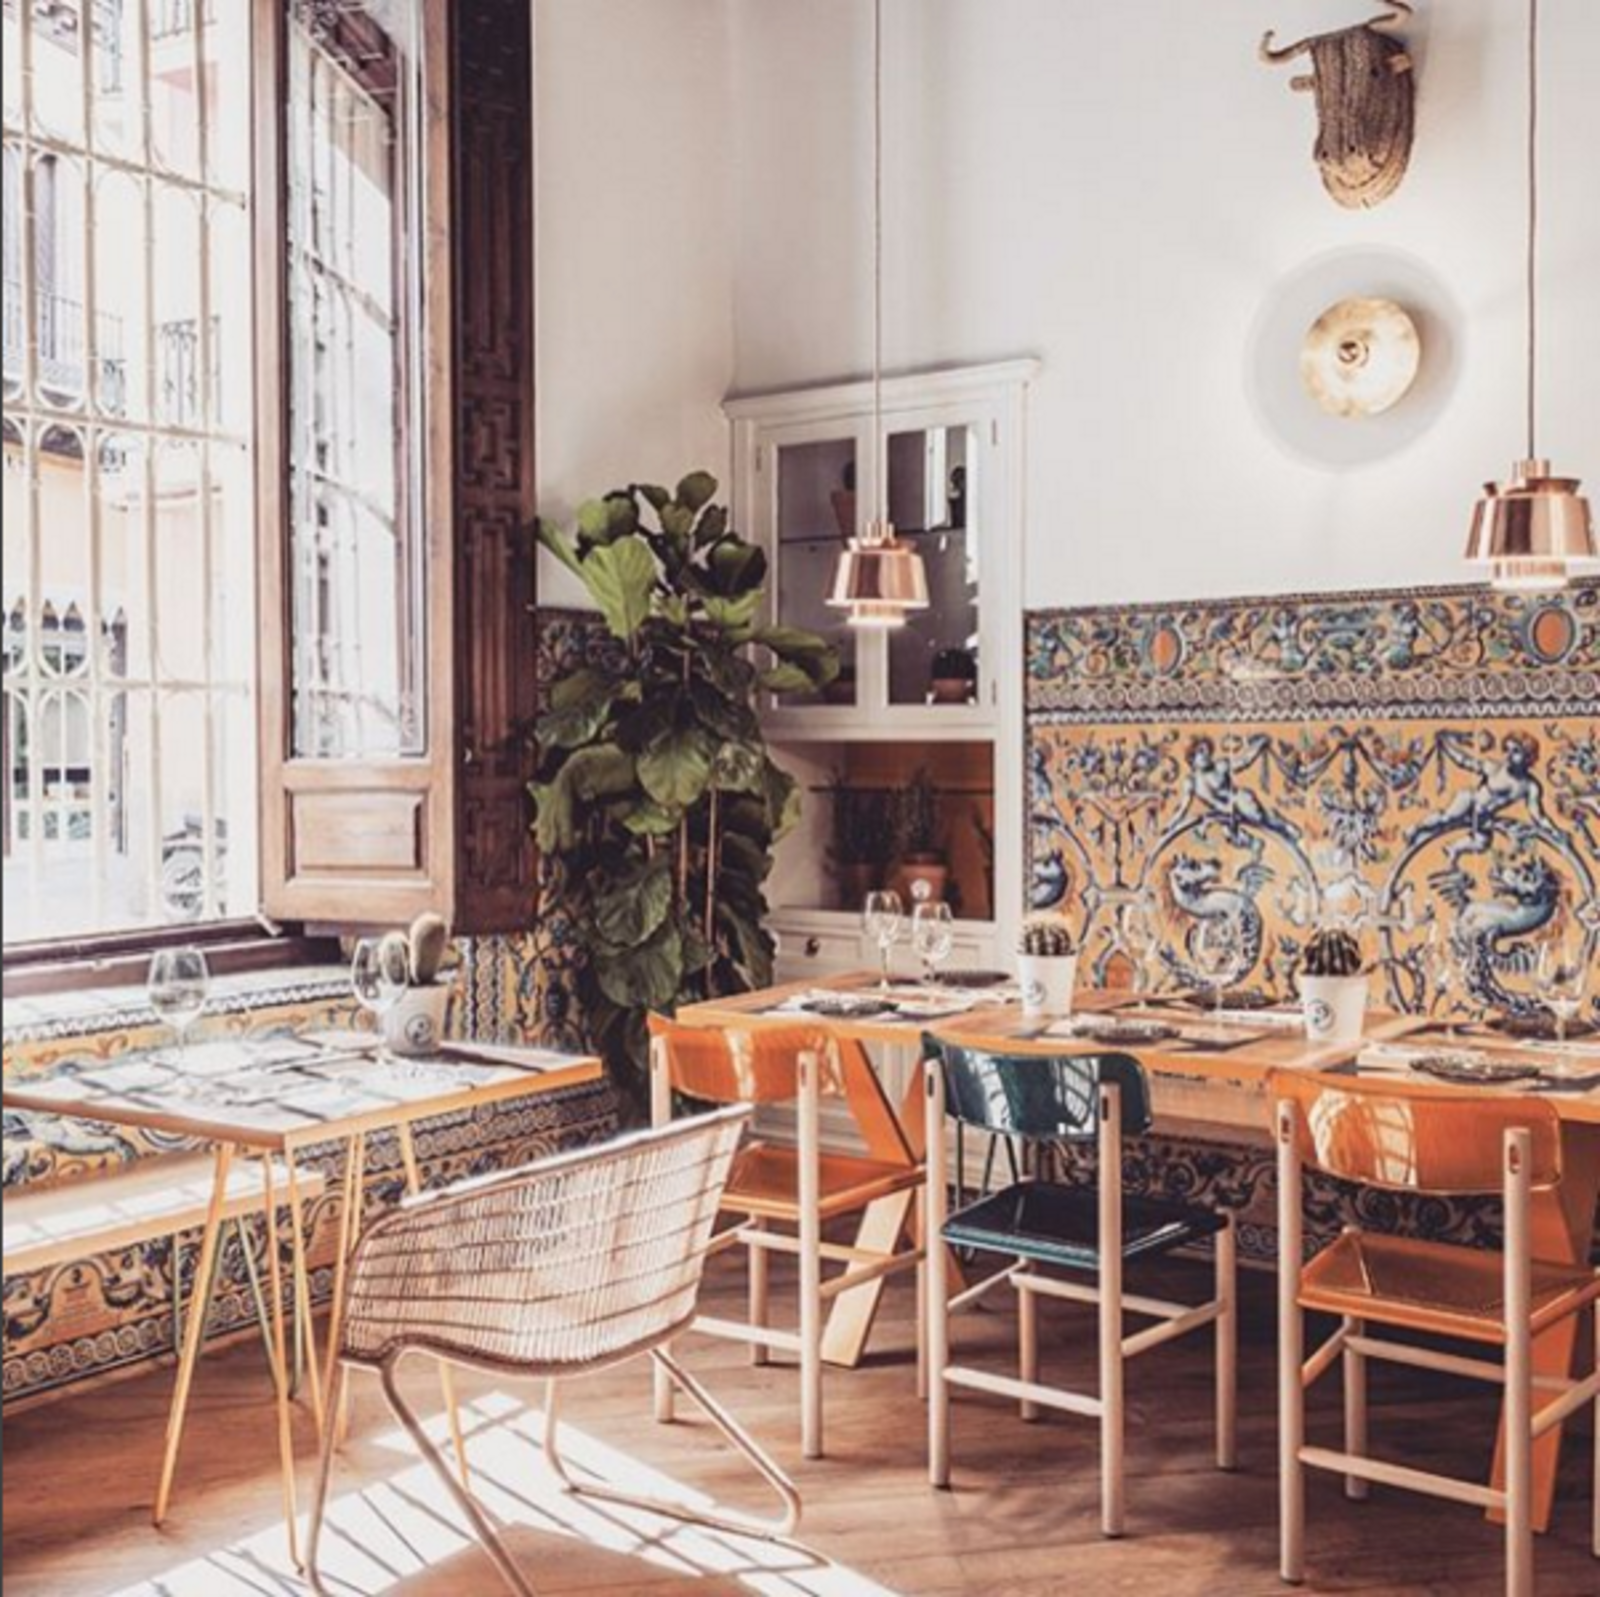 The restaurant El Pinton in Seville, Spain.  Mediterranean by Heather Corcoran from Instagram Account We Love: Finding the World's Best-Designed Hotels, Cafes, and More